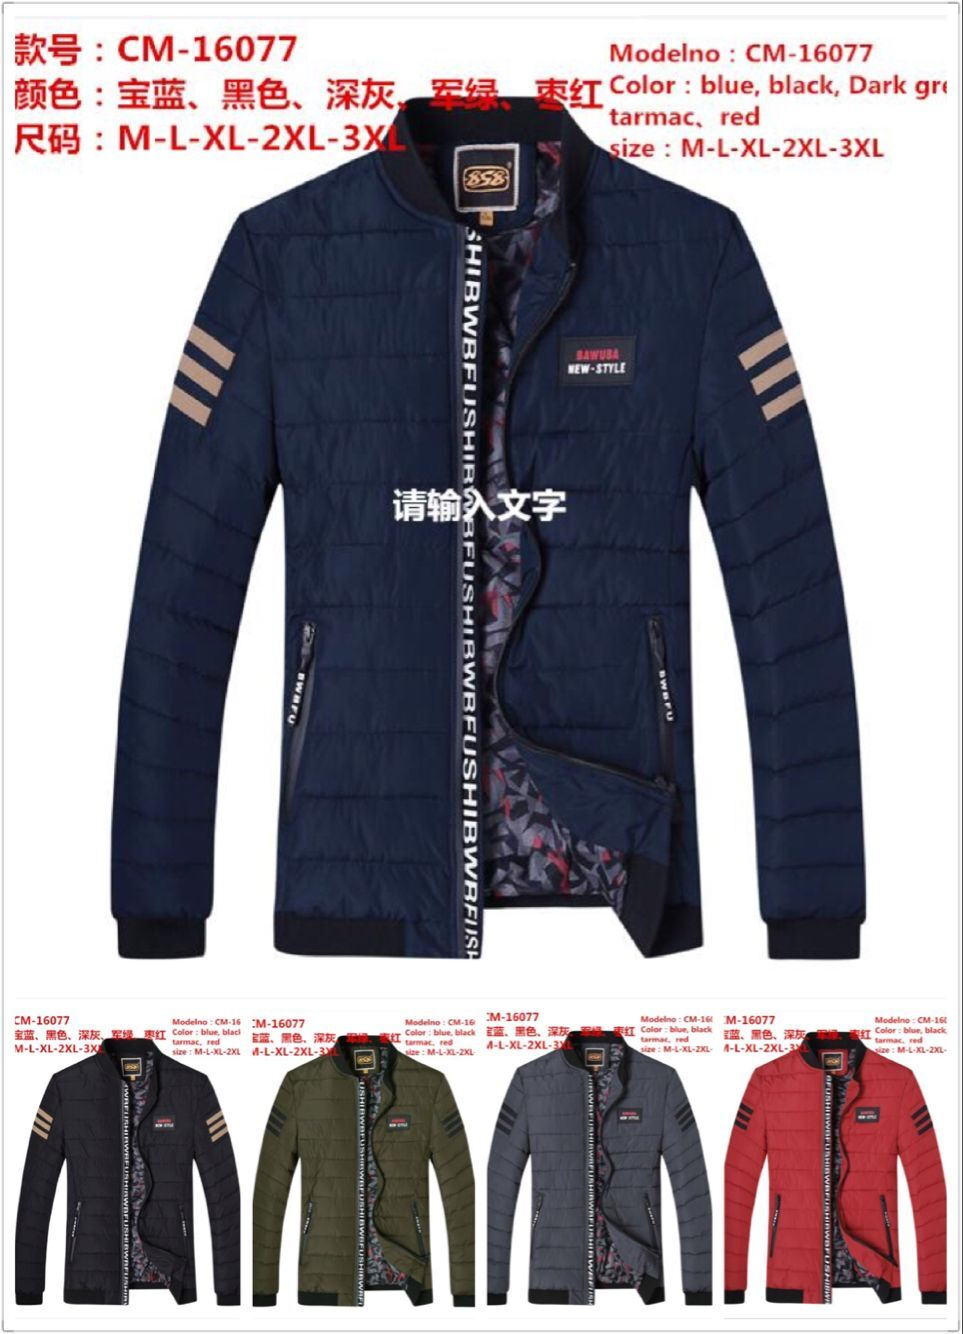 MEN'S JACKET CM-16077